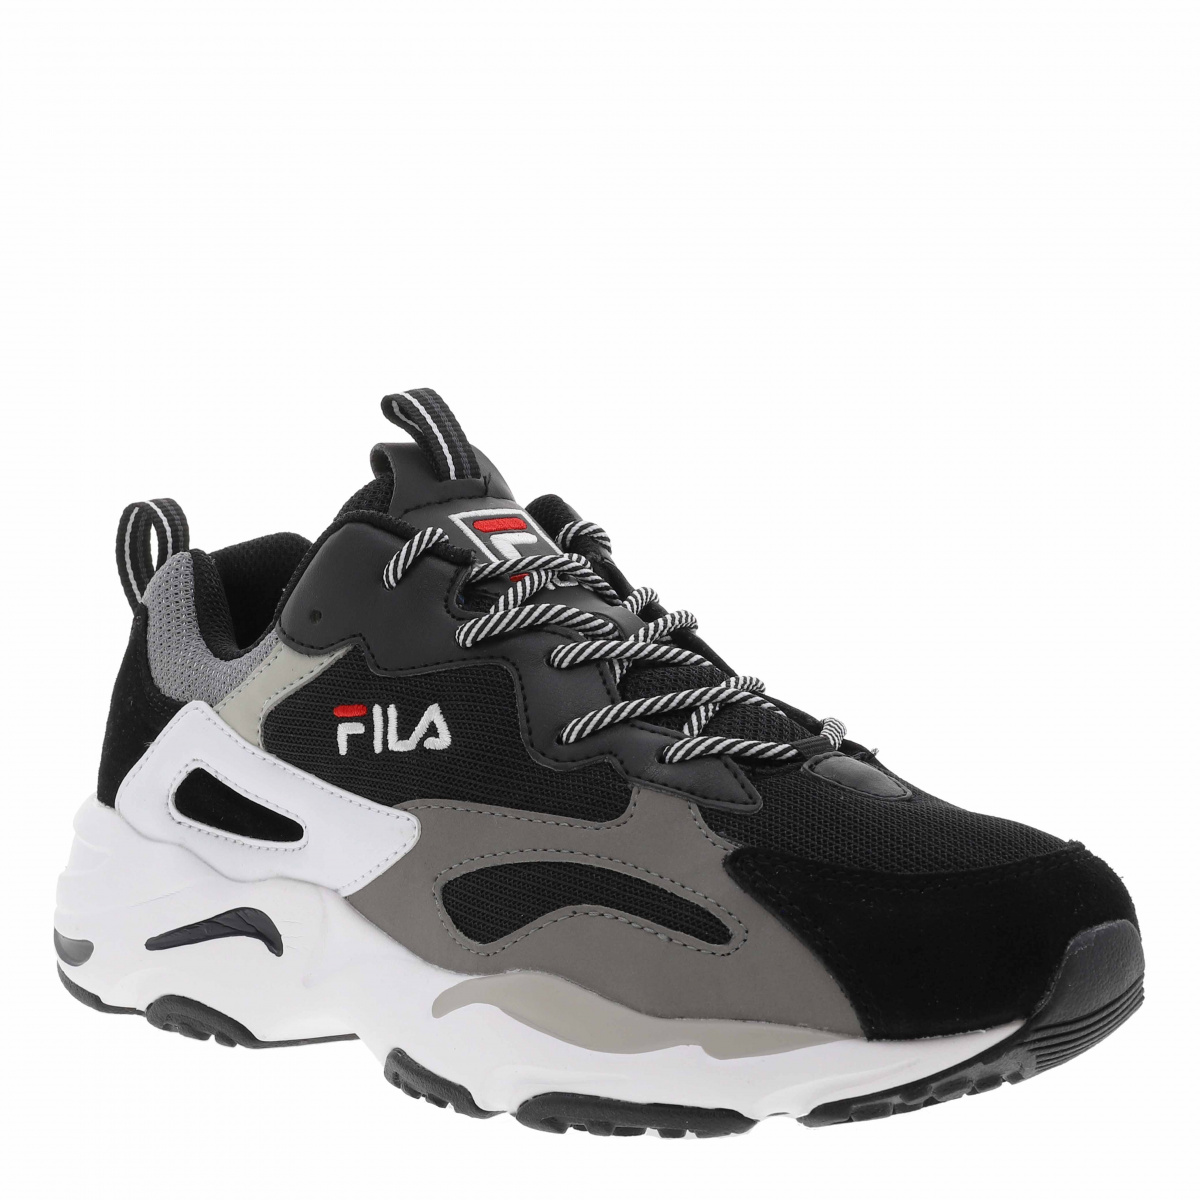 FILA Baskets RAY TRACER homme noir